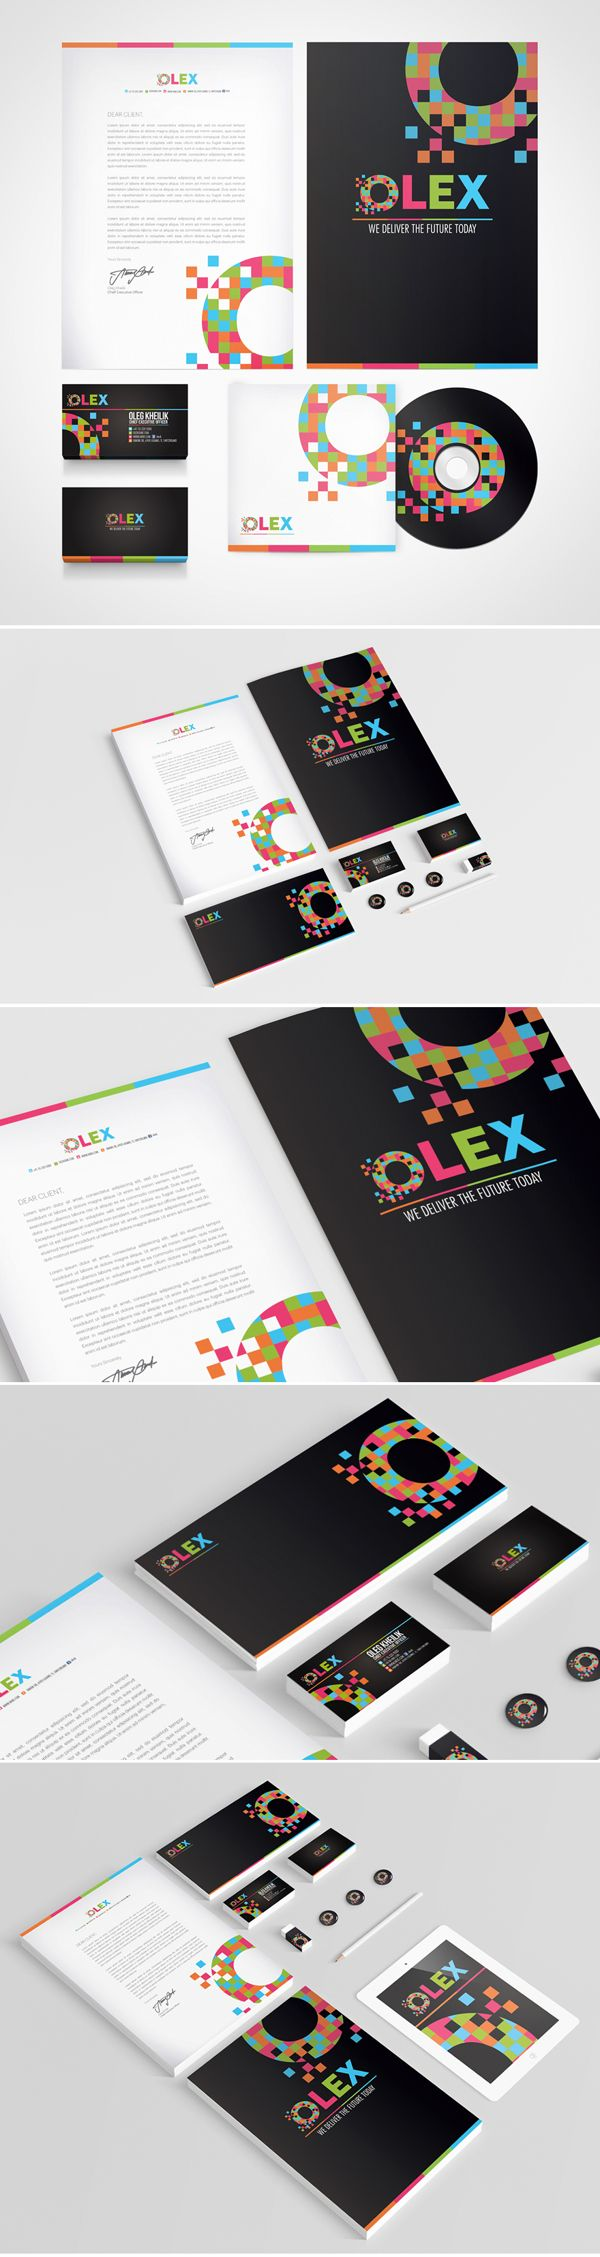 "OLEX personal identity is a branding project for the CEO of OLEX. Pixillation of ""O"" in creating the entire branding stationary for OLEX."